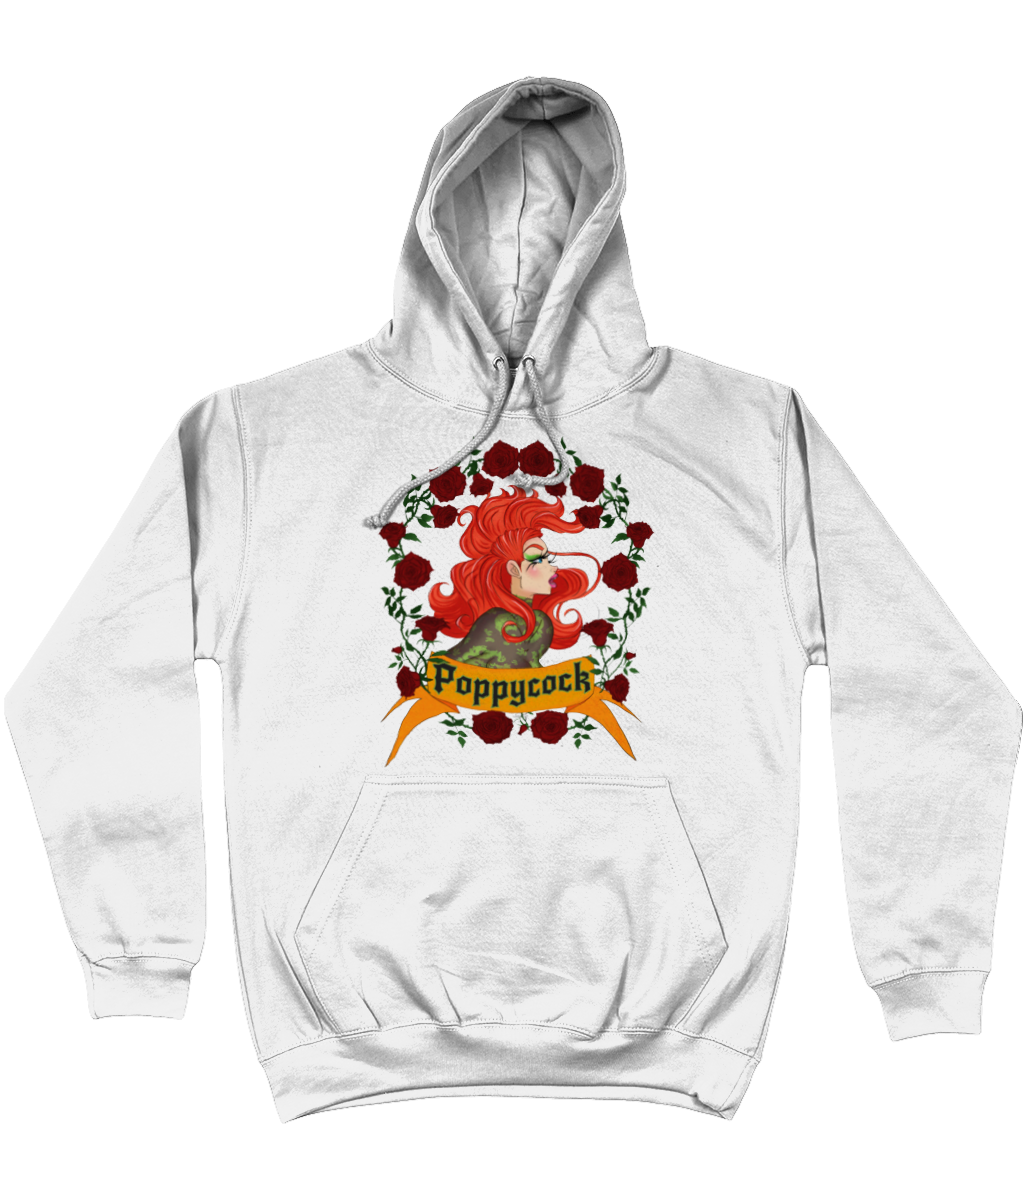 Poppycock - Official Merch - Hoodie